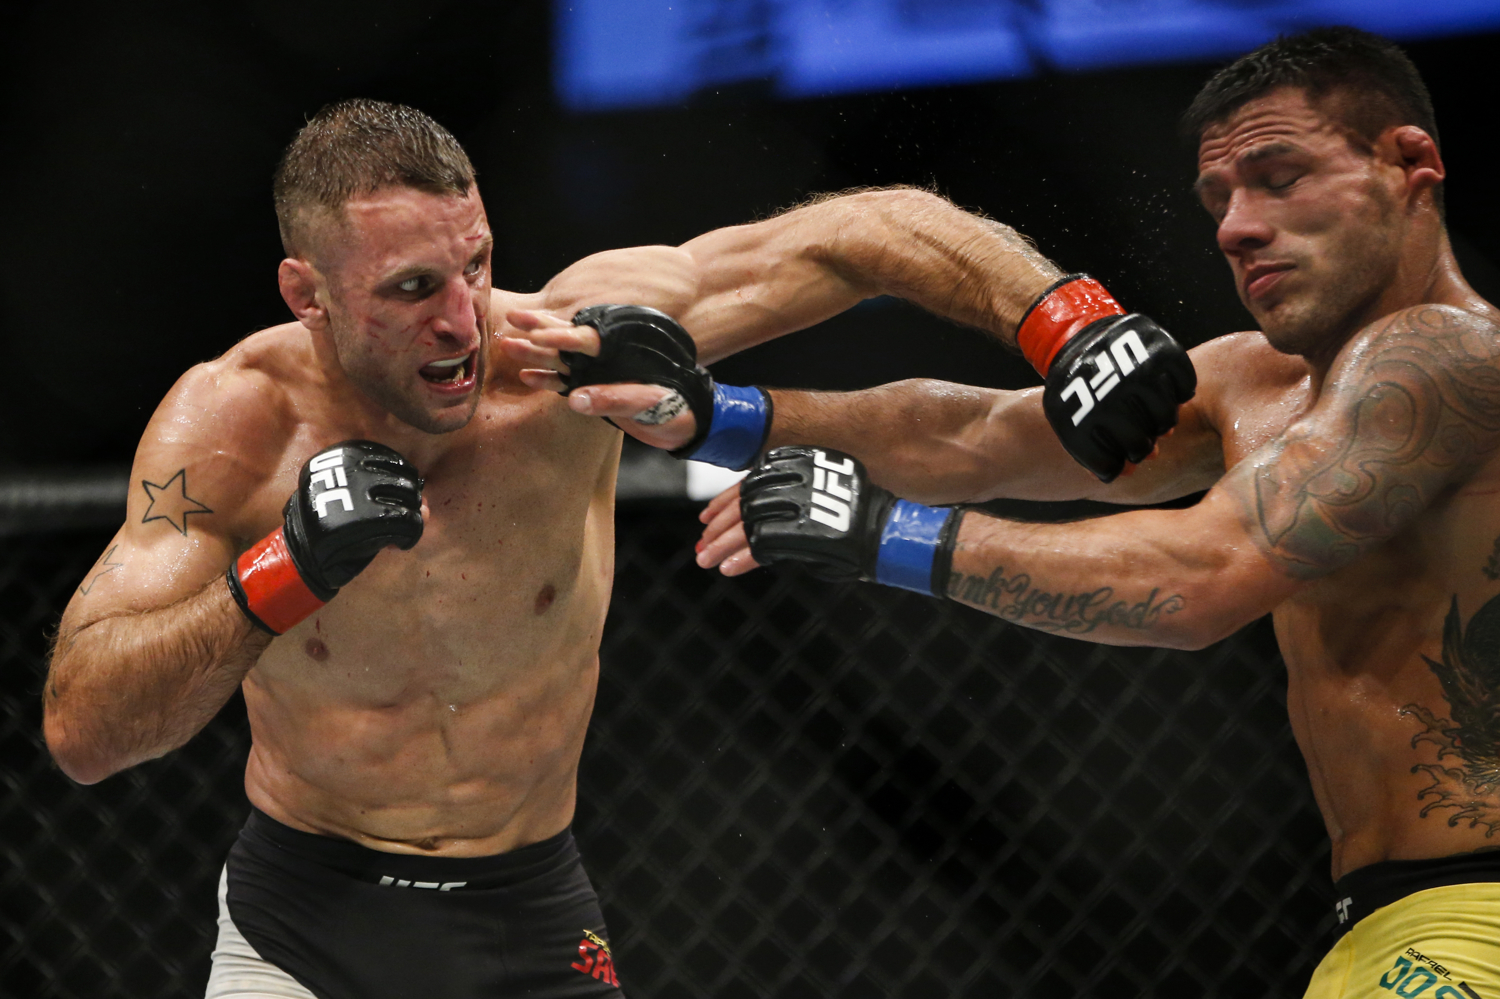 Tarec Saffiedine of Belgium (L) punches Rafael dos Anjos of Brazil during their welterweight bout at the UFC Fight Night at the Singapore Indoor Stadium on June 17, 2017.